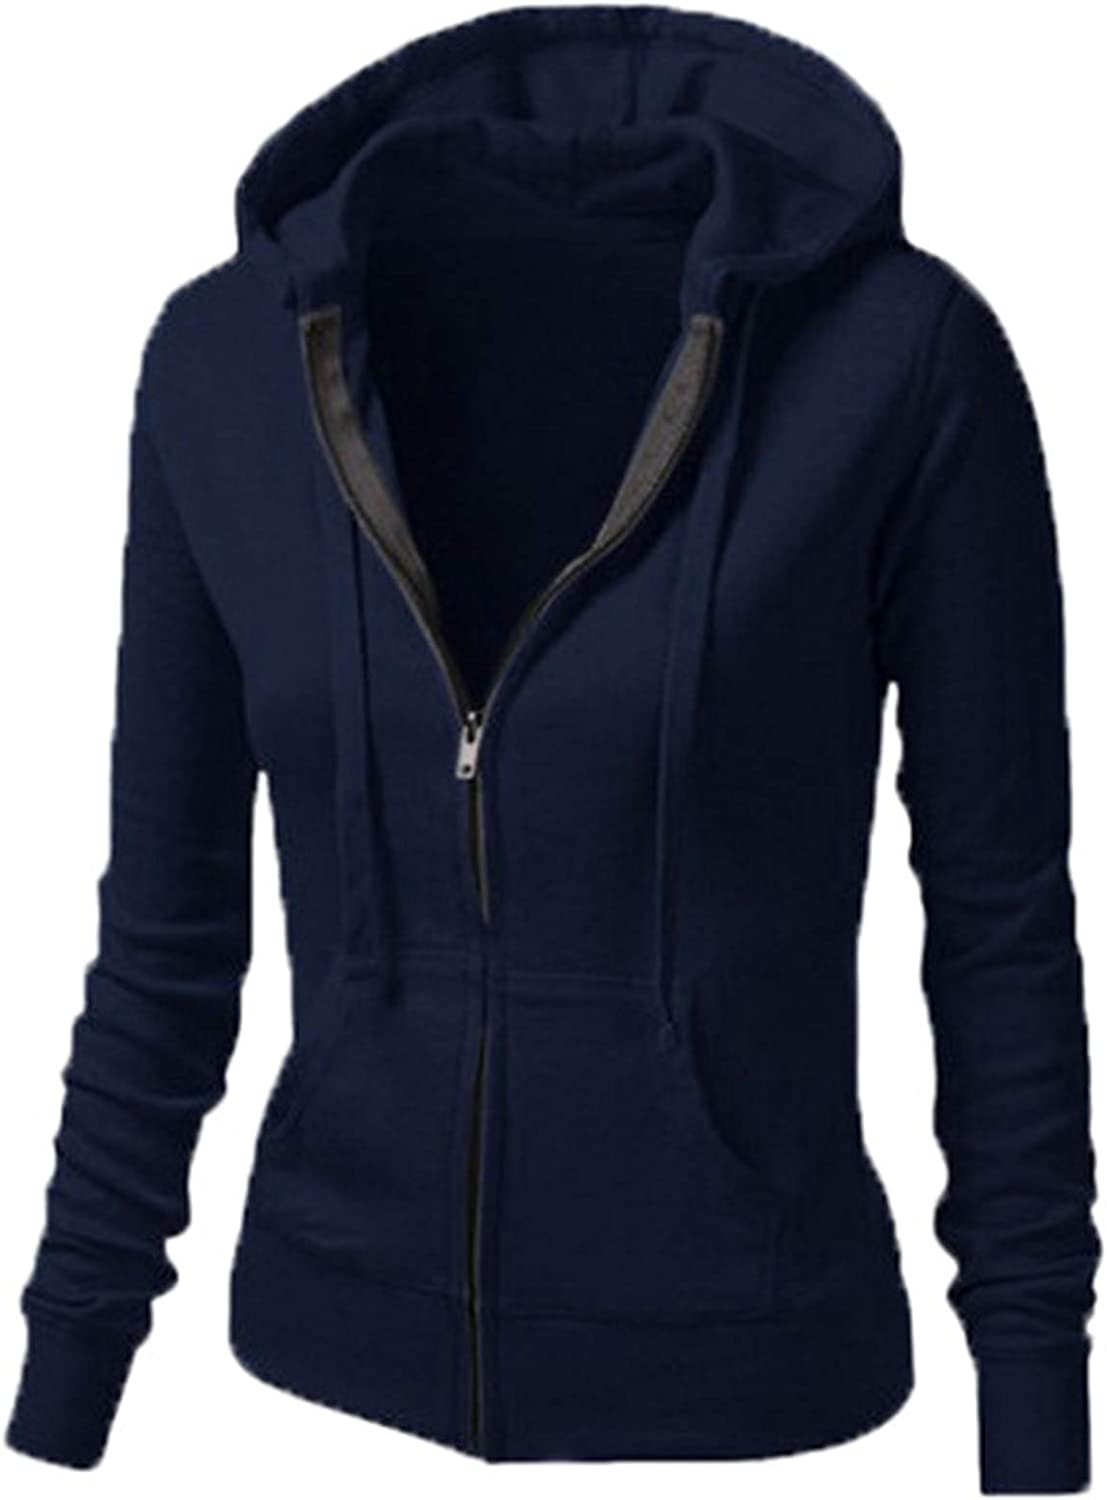 Andongnywell Women's Soft Cotton Basic Casual Solid Midweight Zipper-Up Hoodie Jackets Coats Overcoats : Clothing, Shoes & Jewelry